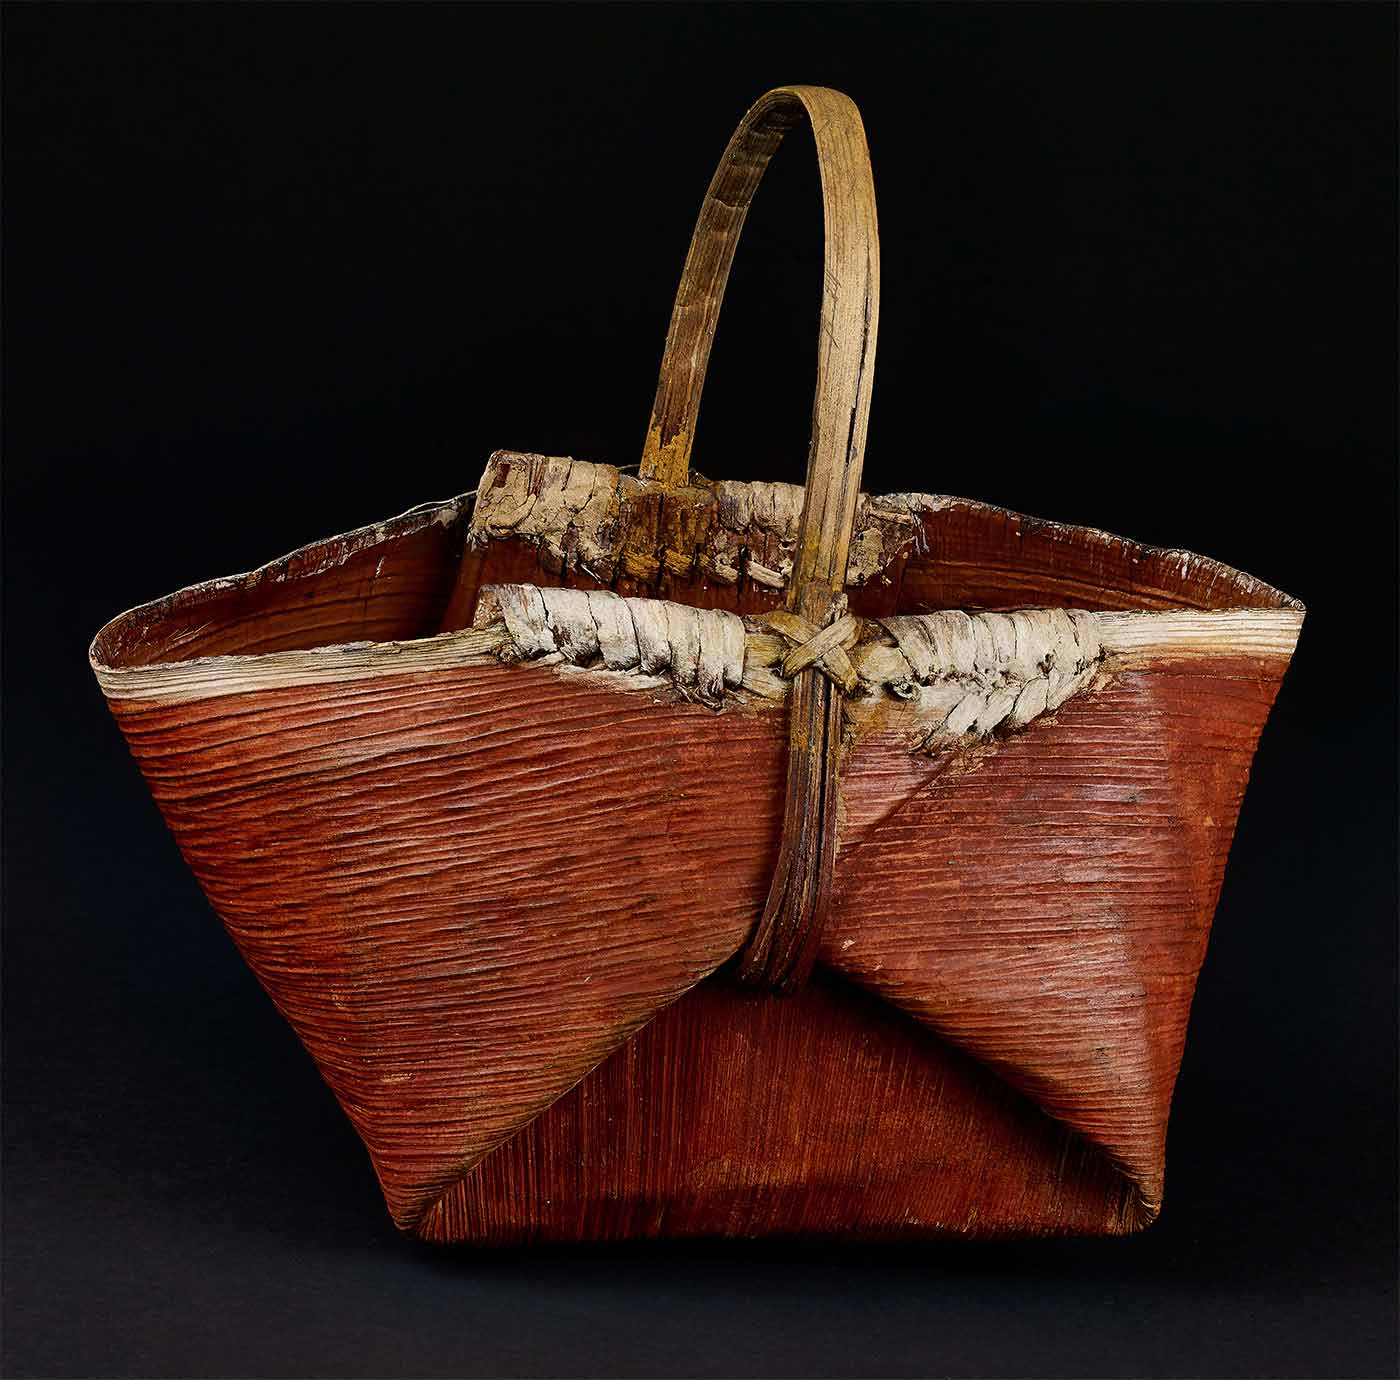 Basket made of vegetable fibre. Closely twined with complex painted decoration in white, red and dark green ochre, covering two thirds of basket leaving one section plain.